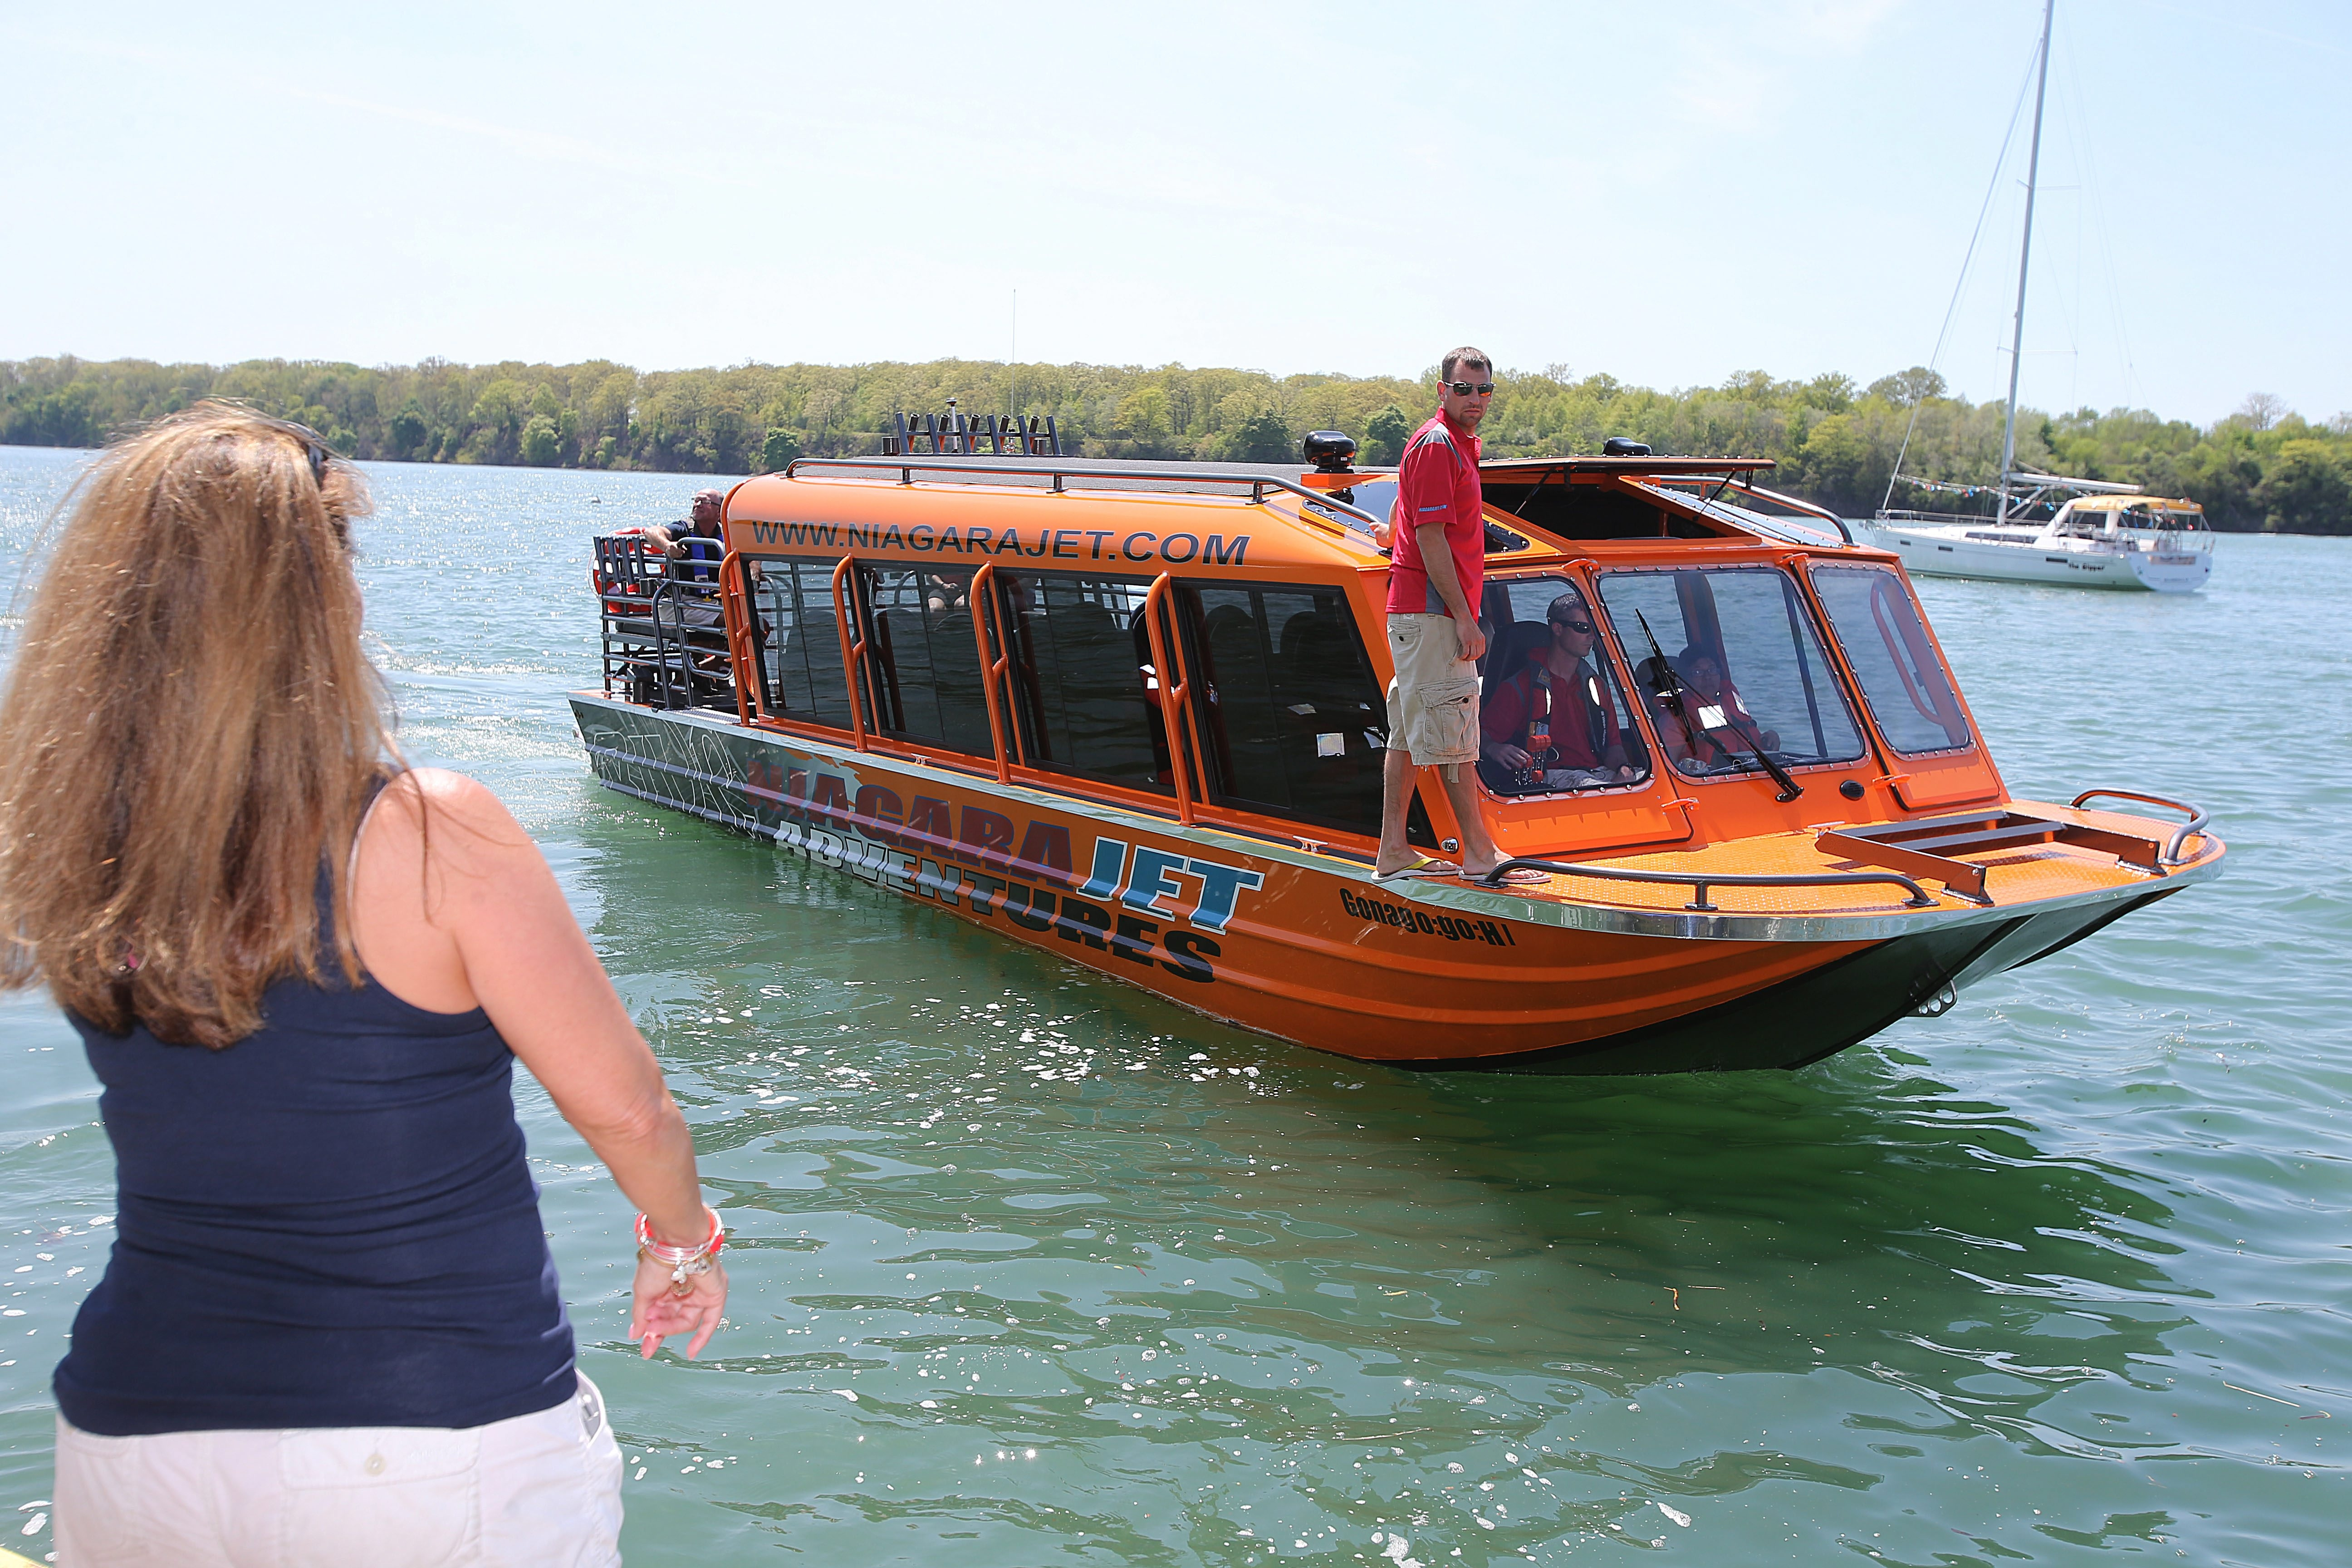 """Builder Chris Bohnenkamp of Boise, Idaho, calls his new boat """"the toughest whitewater boat in the industry"""" with three engines and a hull designed to withstand the pounding of the Niagara River."""